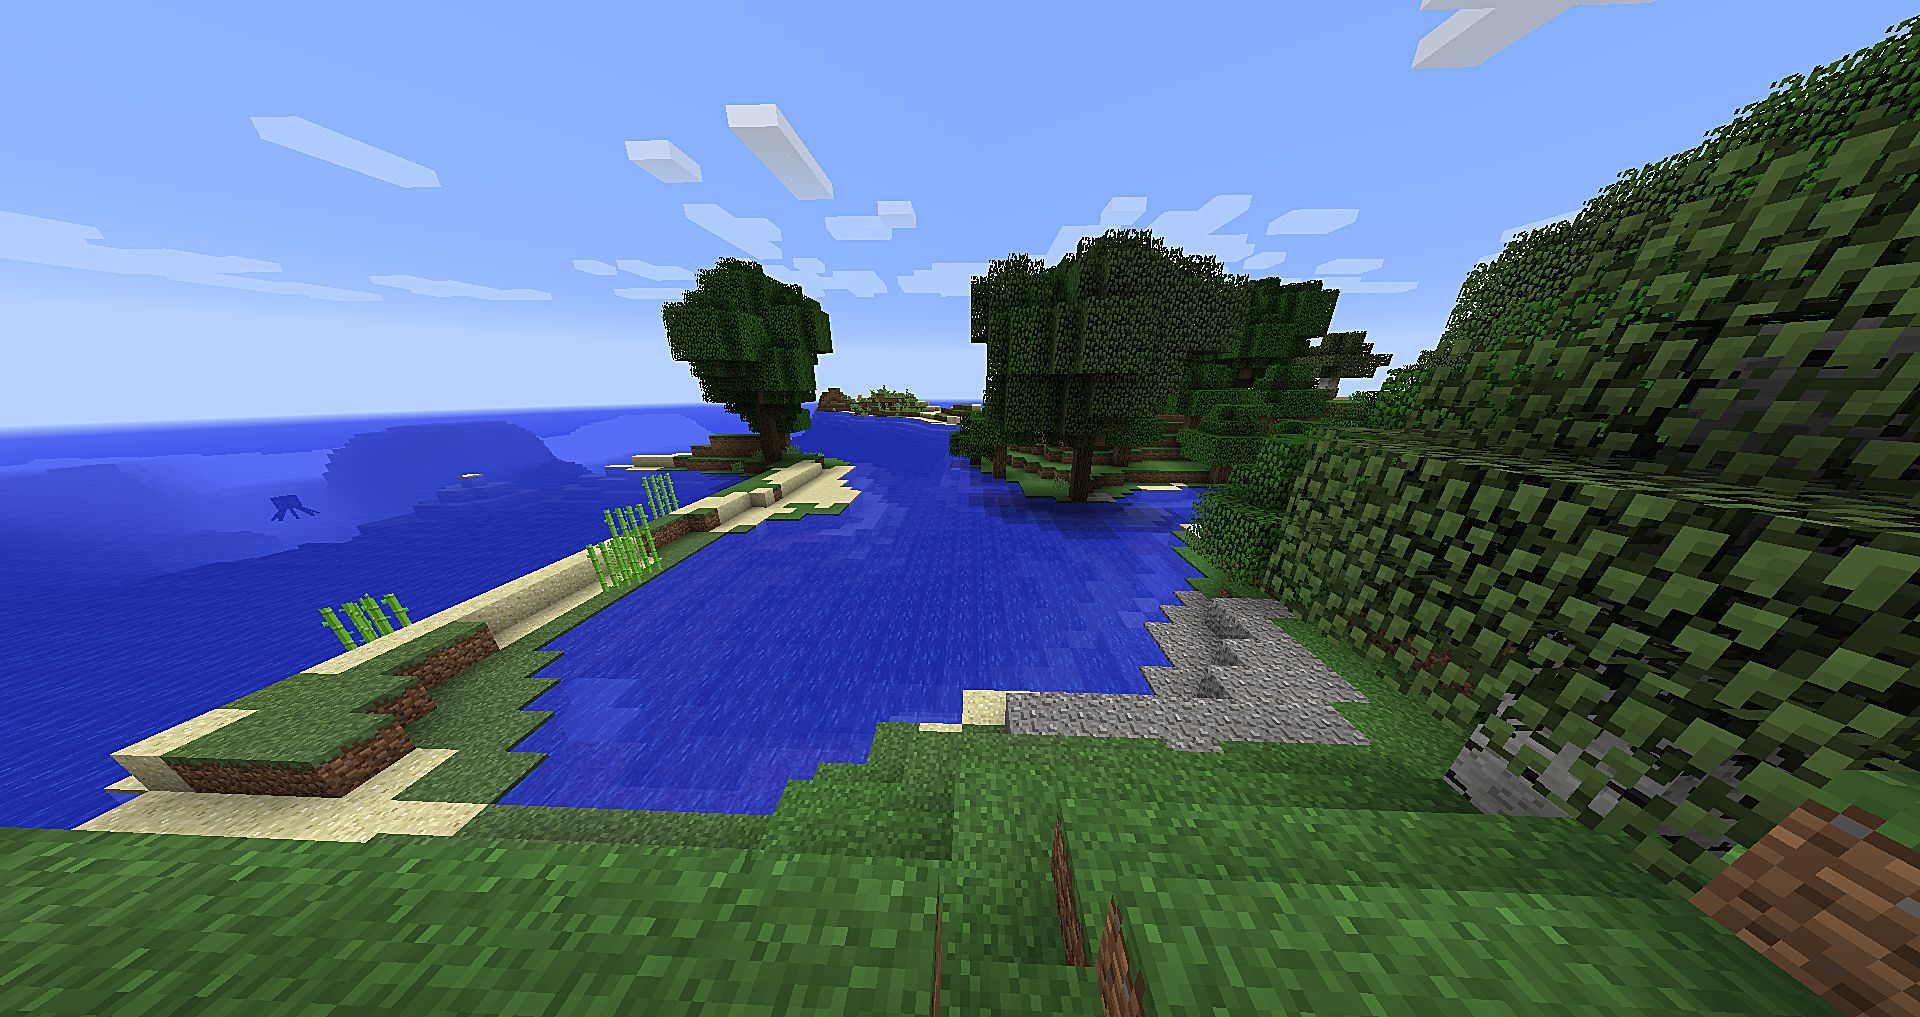 Minecraft Tropical Island: 3 Minecraft Seeds To Use As A Server For Your Guild